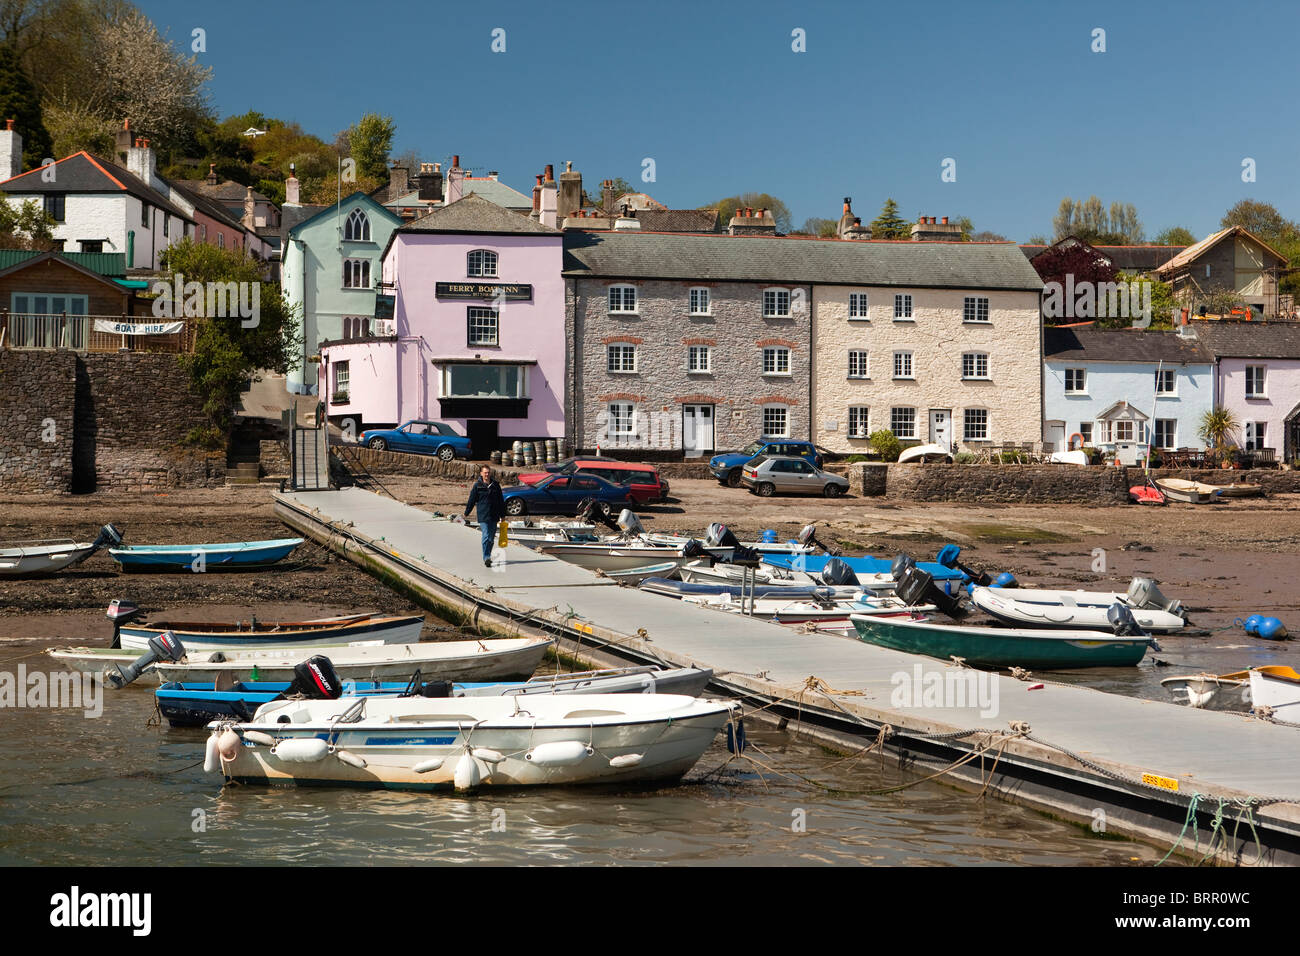 UK, England, Devon, Dittisham, boats moored in front of colourfully painted riverside houses on the Quay - Stock Image